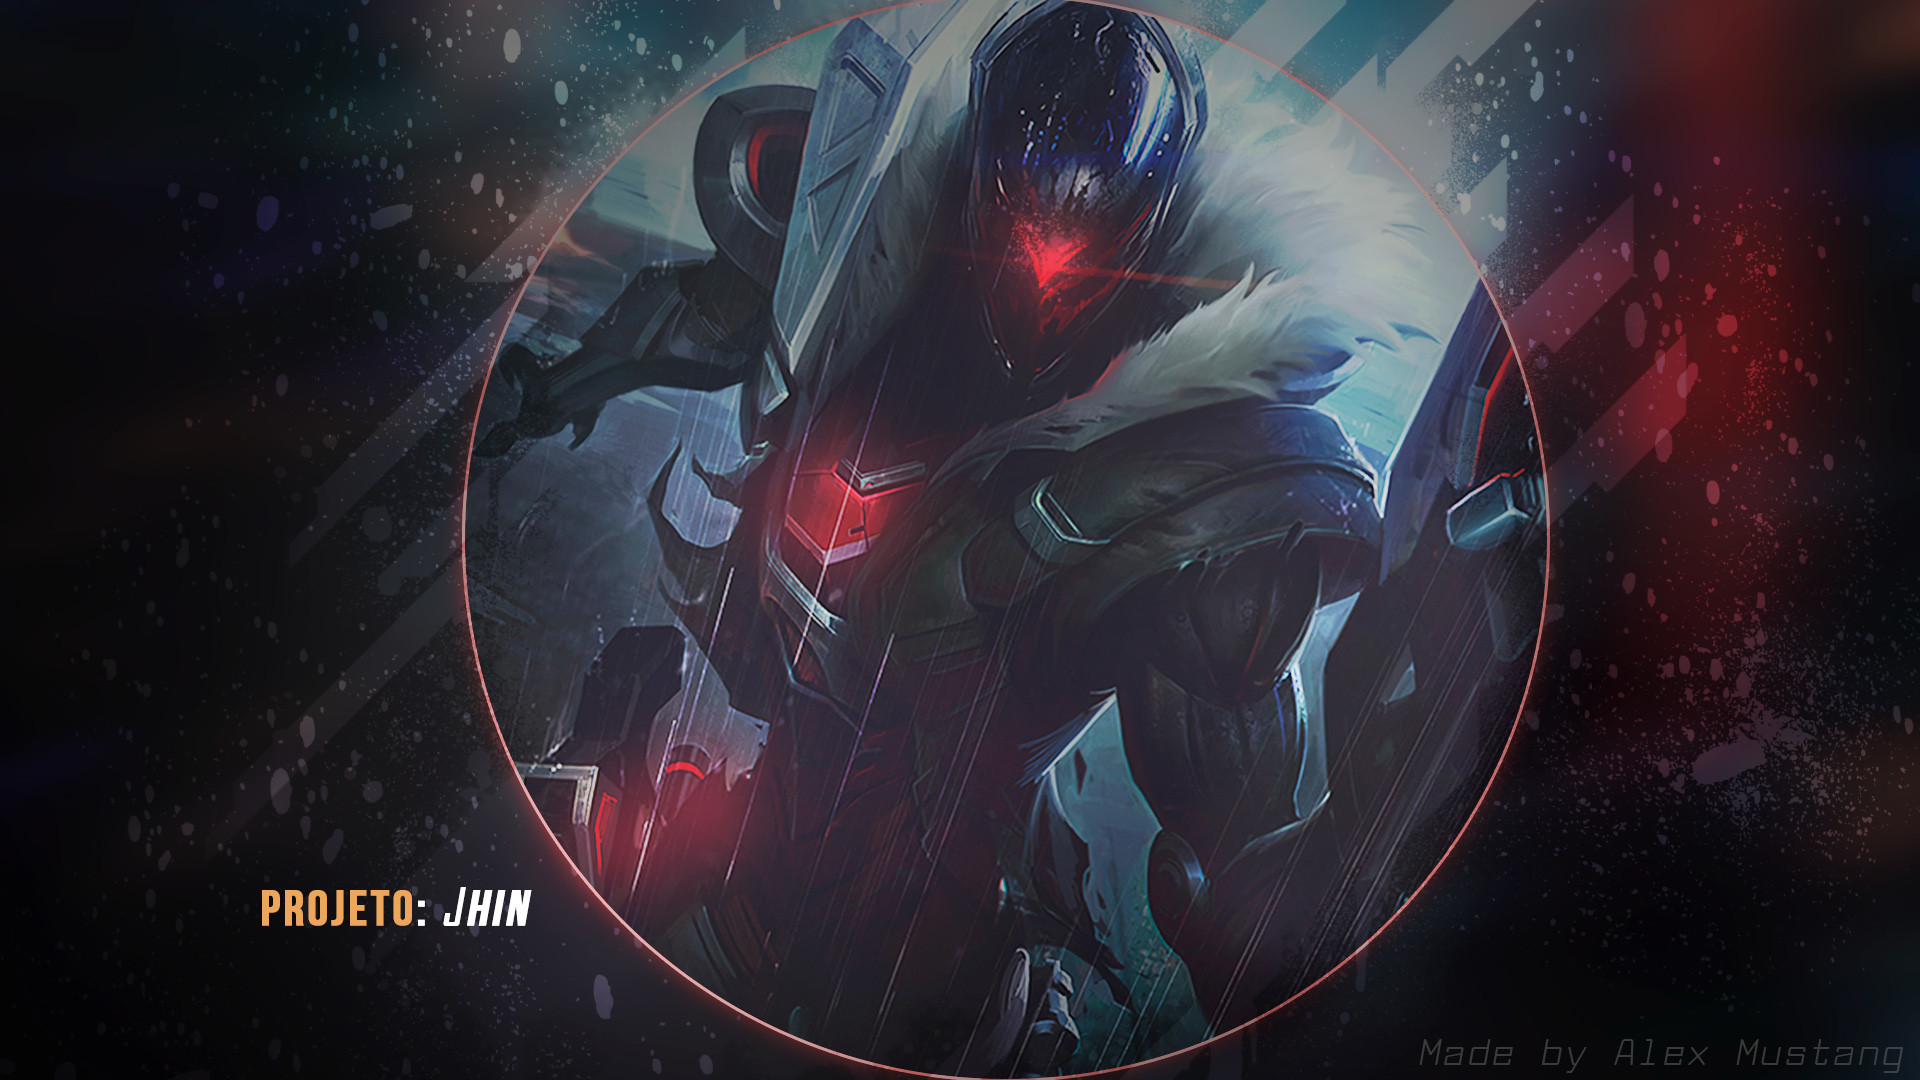 1920x1080 PROJECT Jhin by AlexMust4ng HD Wallpaper Background Fan Art Artwork League  of Legends lol